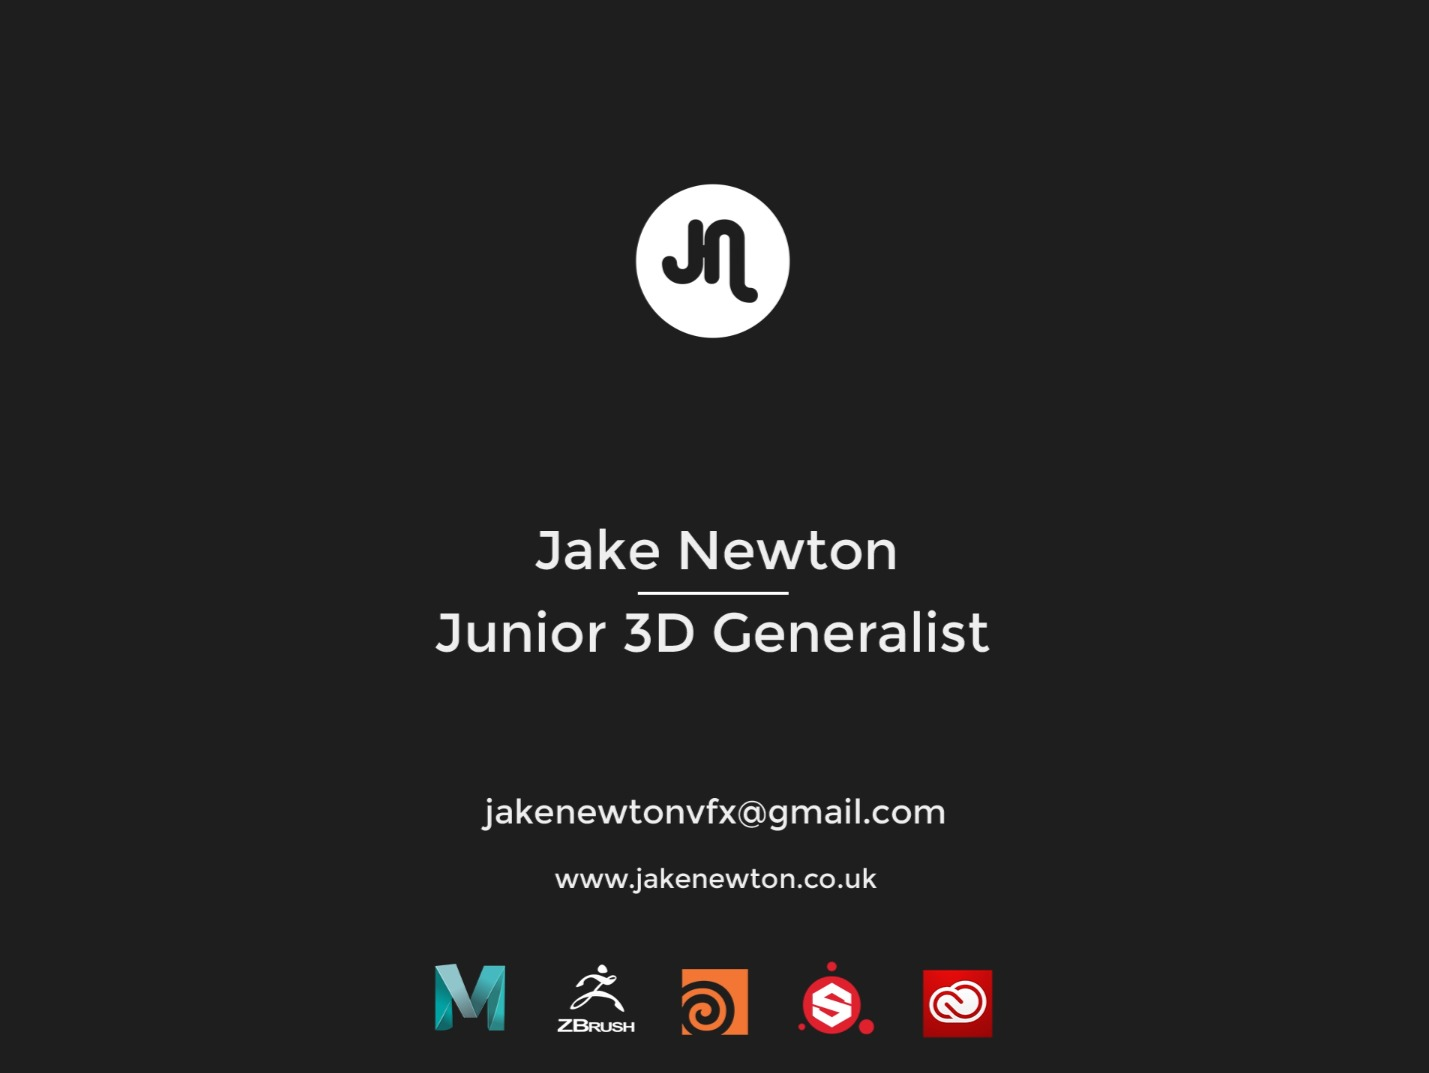 Jake Newton - Junior 3D Generalist Showreel